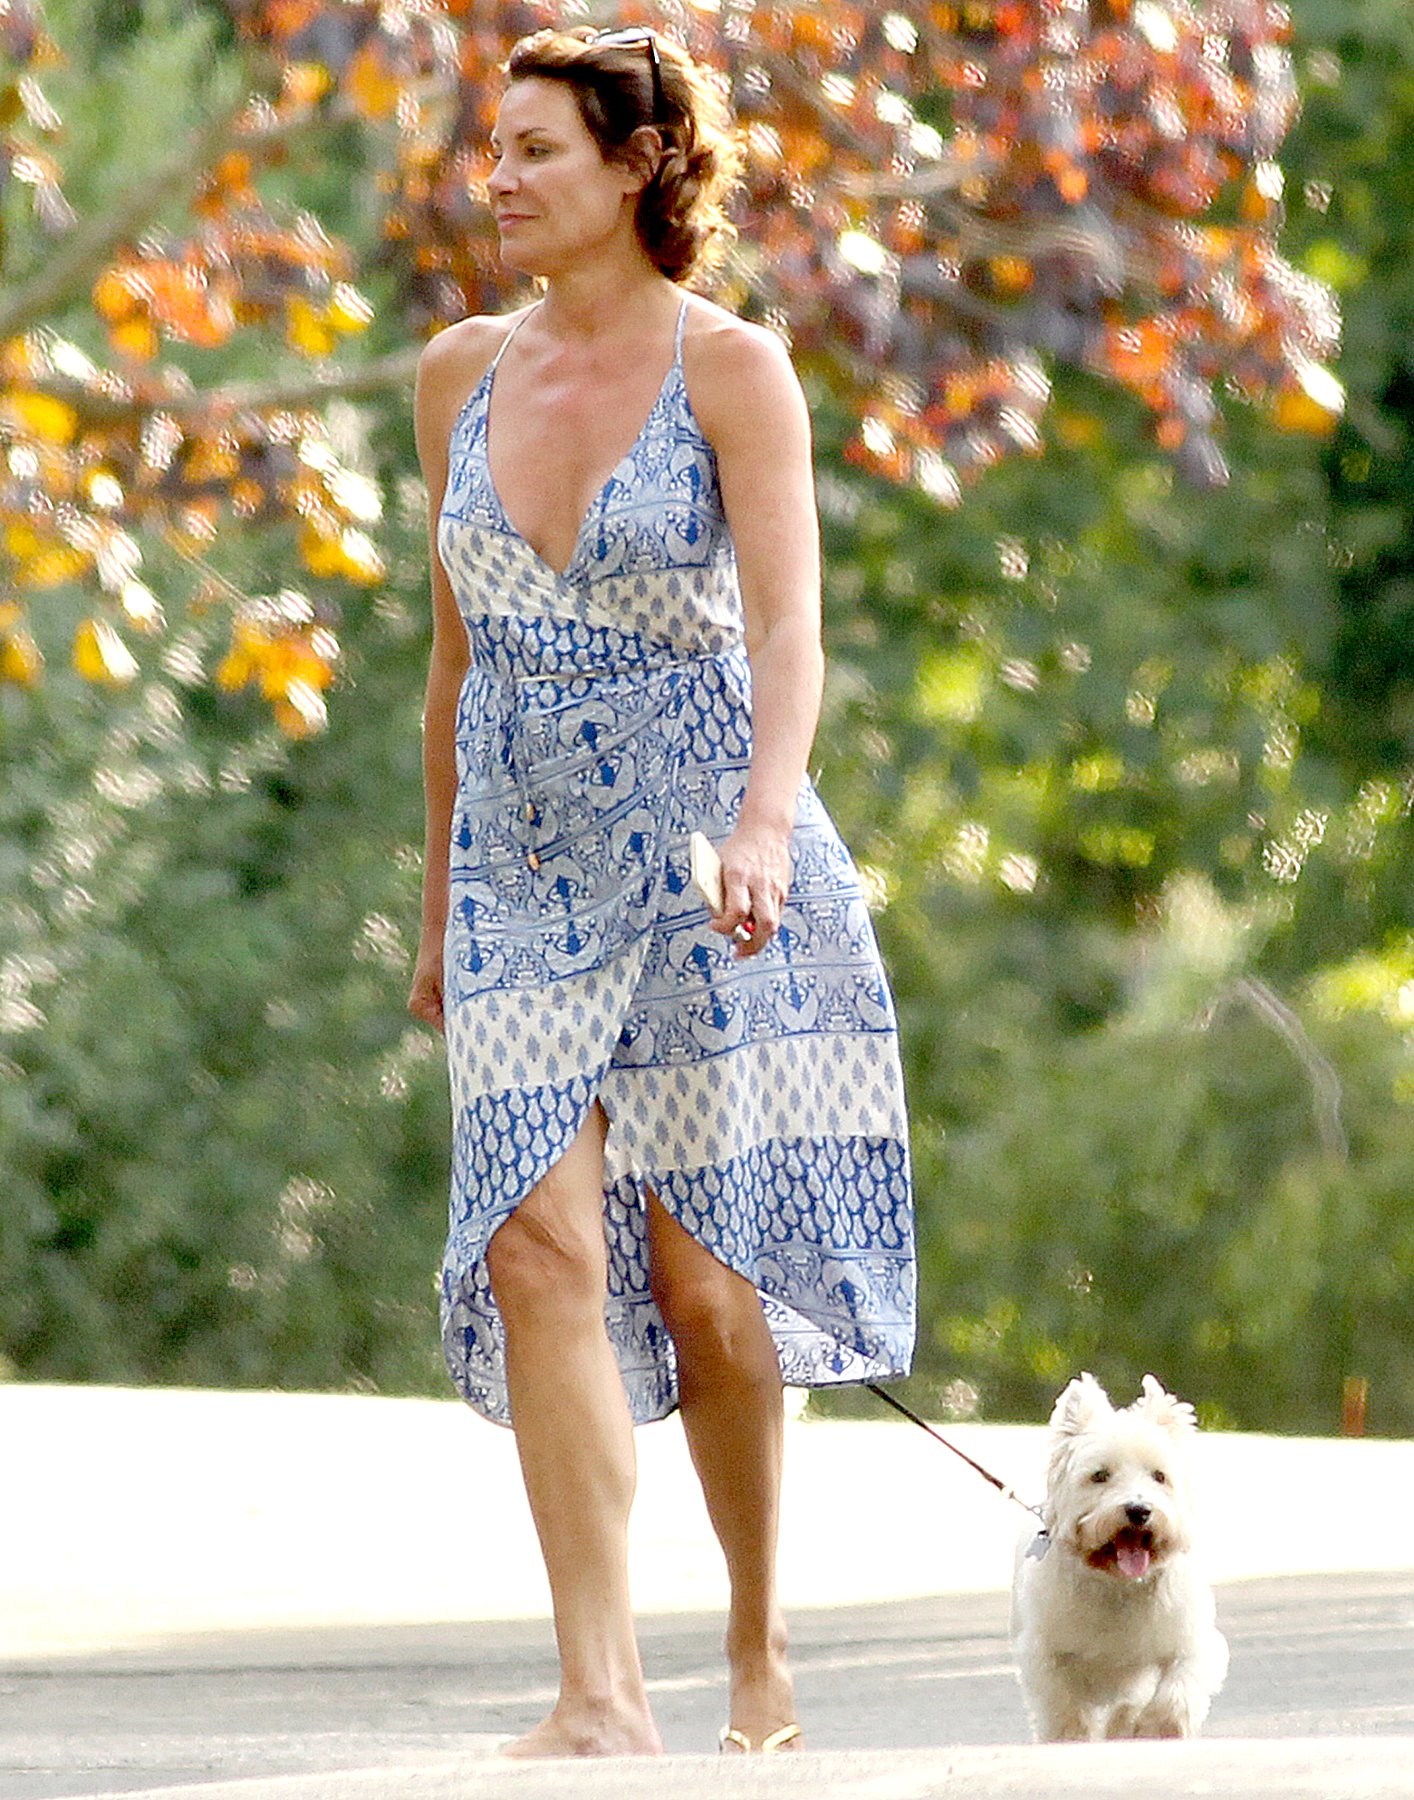 Countess Luann De Lesseps walking her dog with a friend in the Hamptons on August 23, 2017. MATT AGUDO/INSTARimages.com